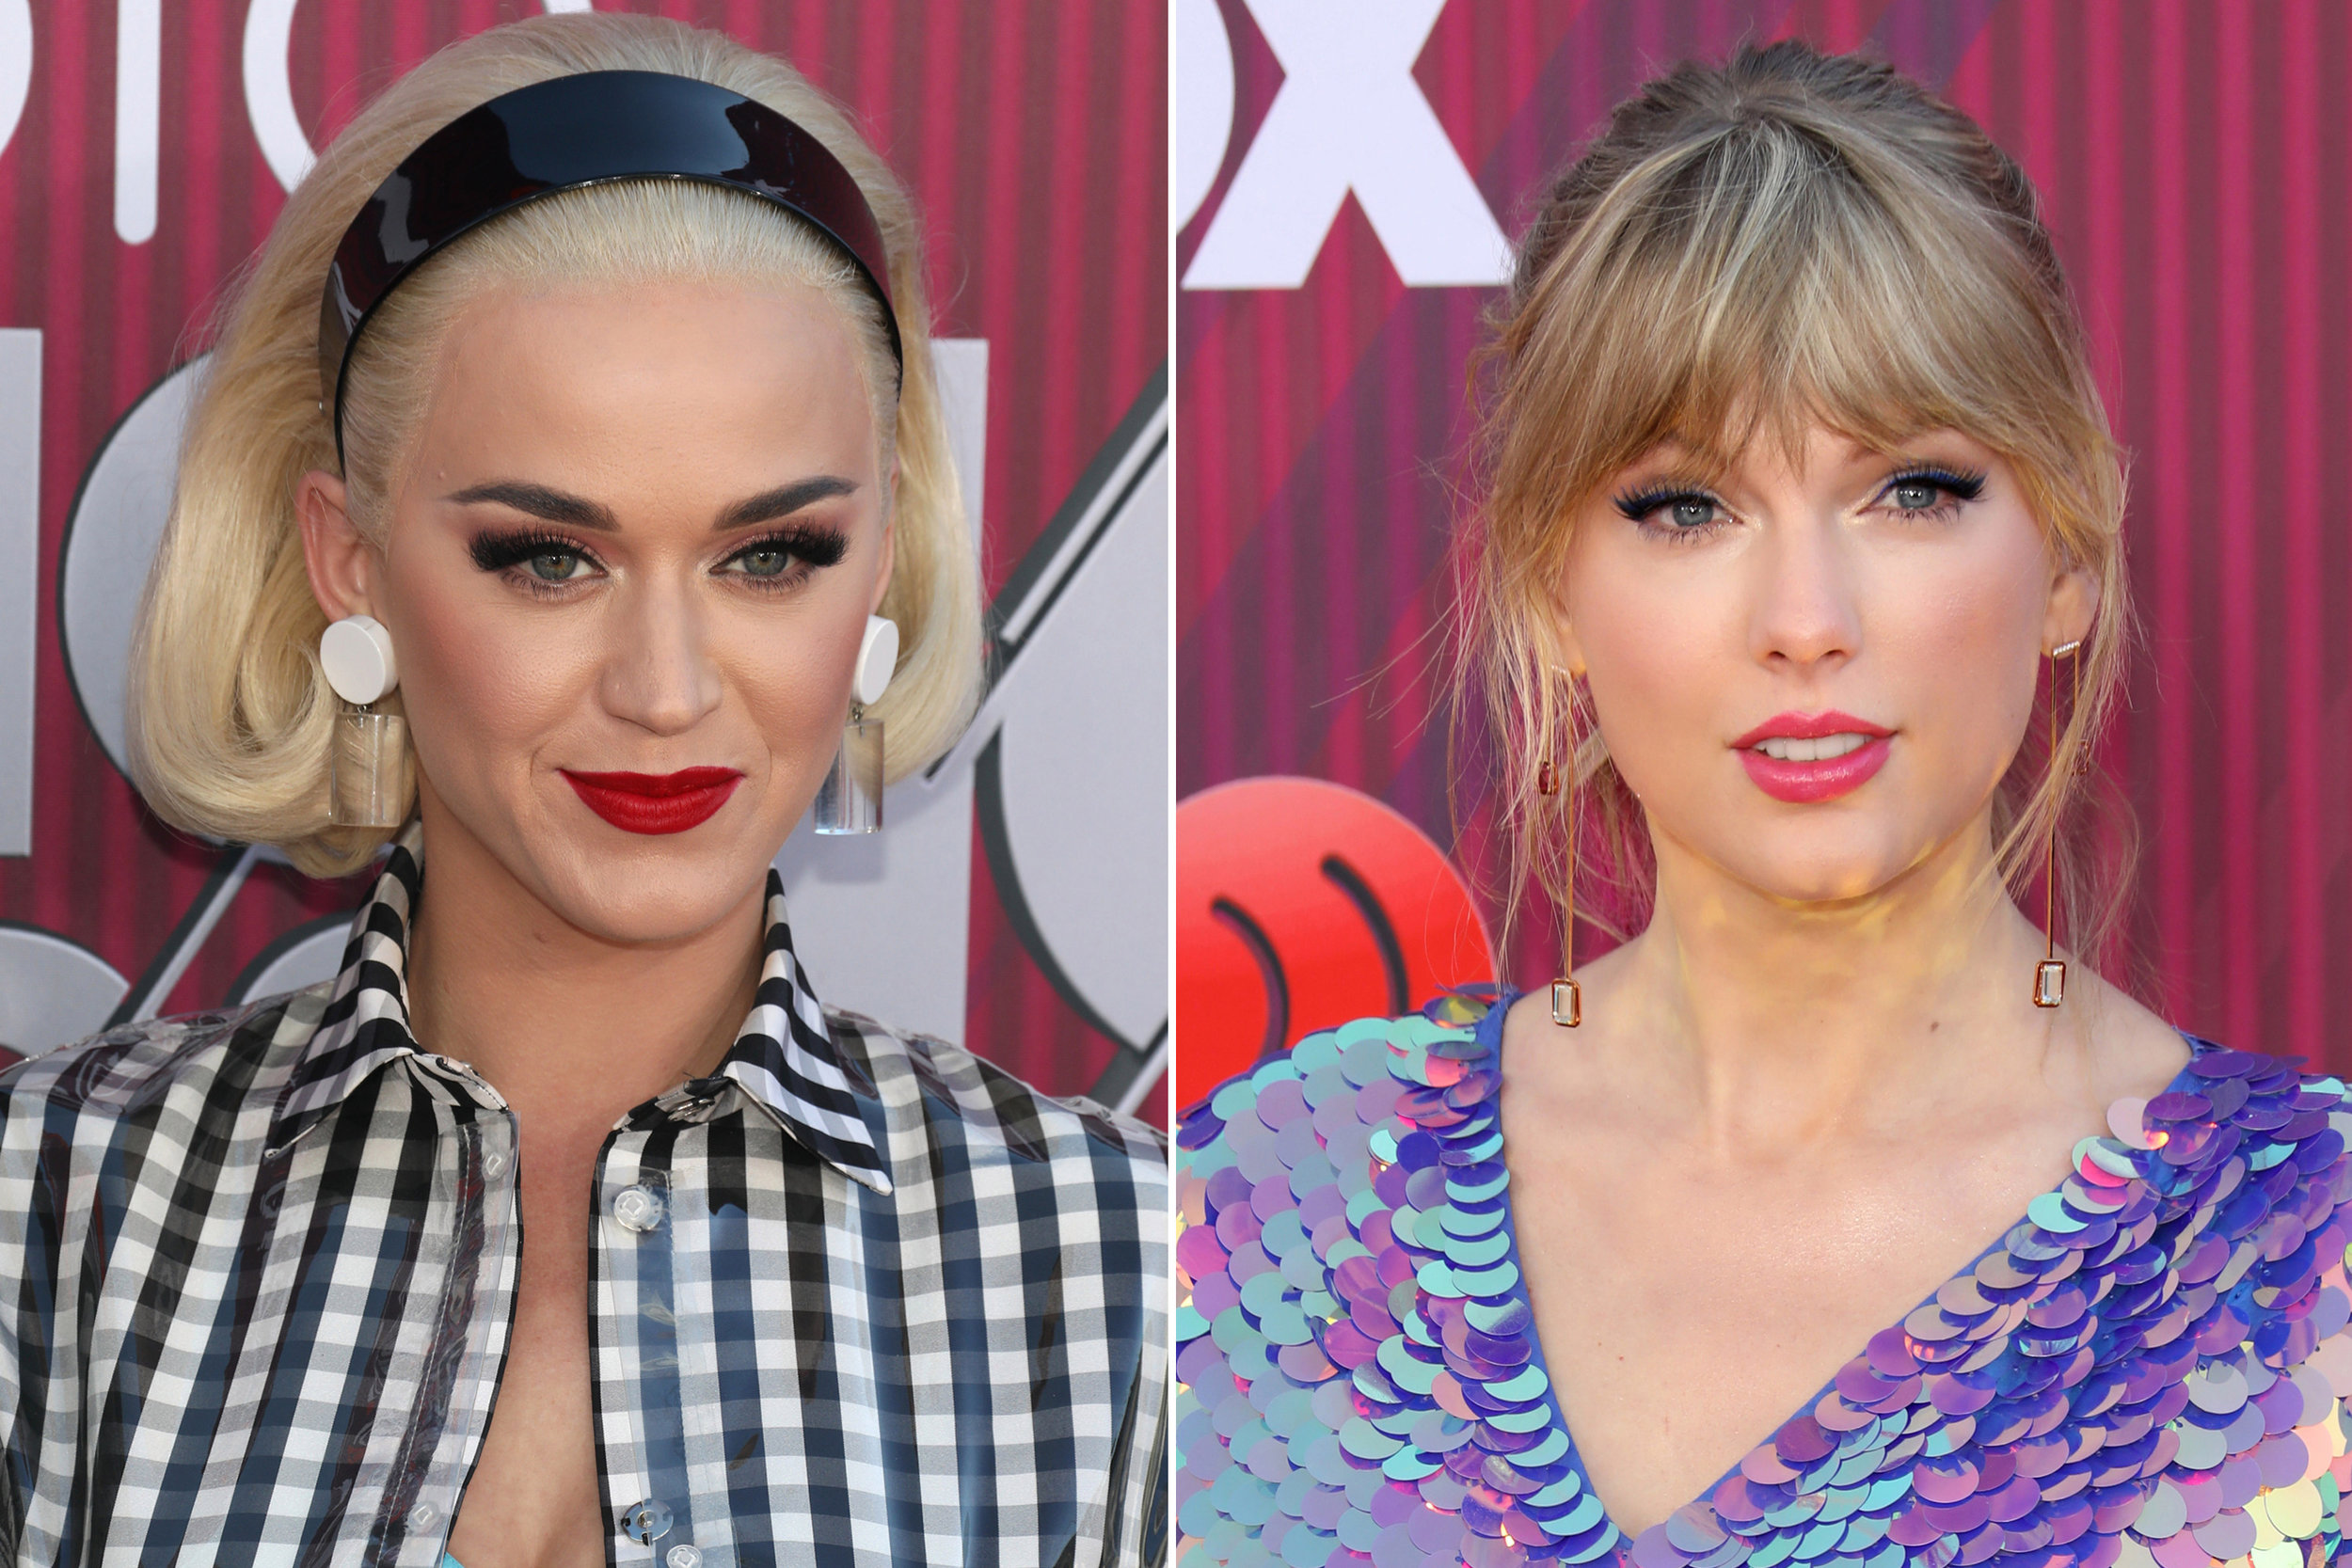 Astrology-Katy-Perry-Taylor-Swift.jpg